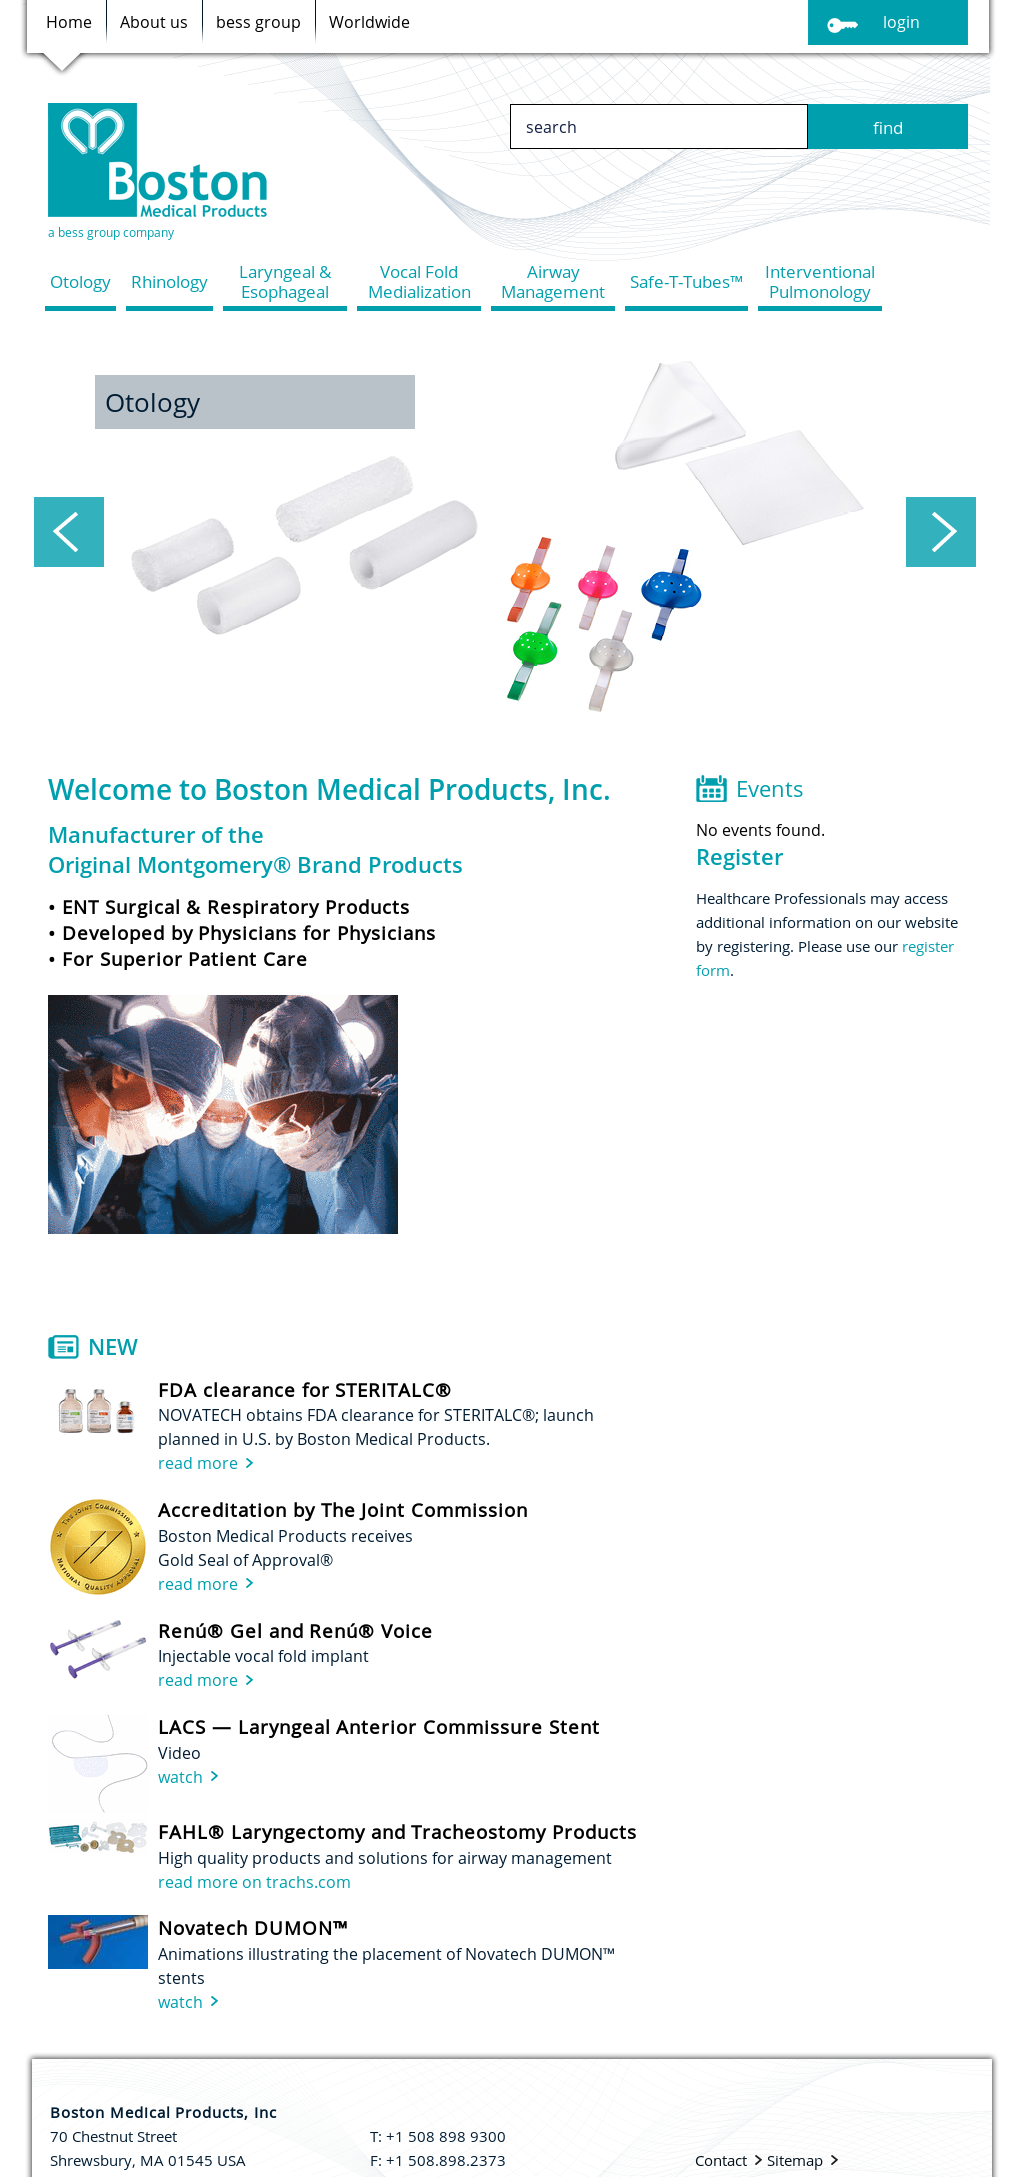 Owler Reports - Press Release: Boston Medical Products